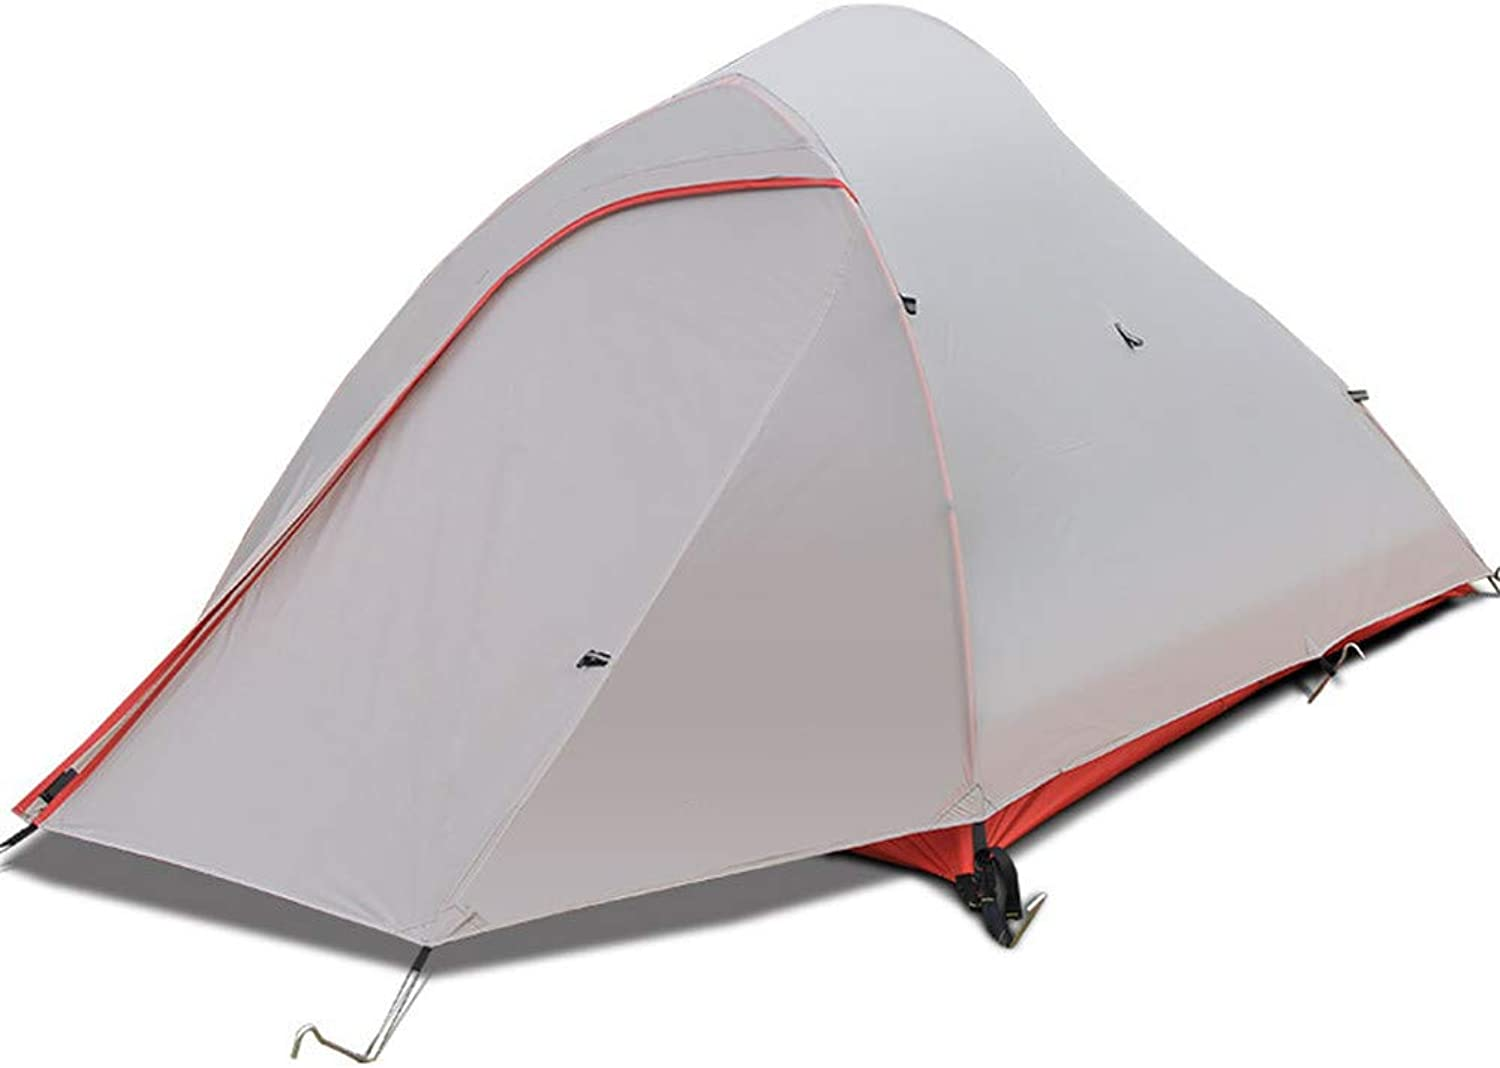 Camping Tent,Outdoor Tent for 2 Persons Double Layer Tent Waterproof Visor,for Camping Beach Hiking Fishing